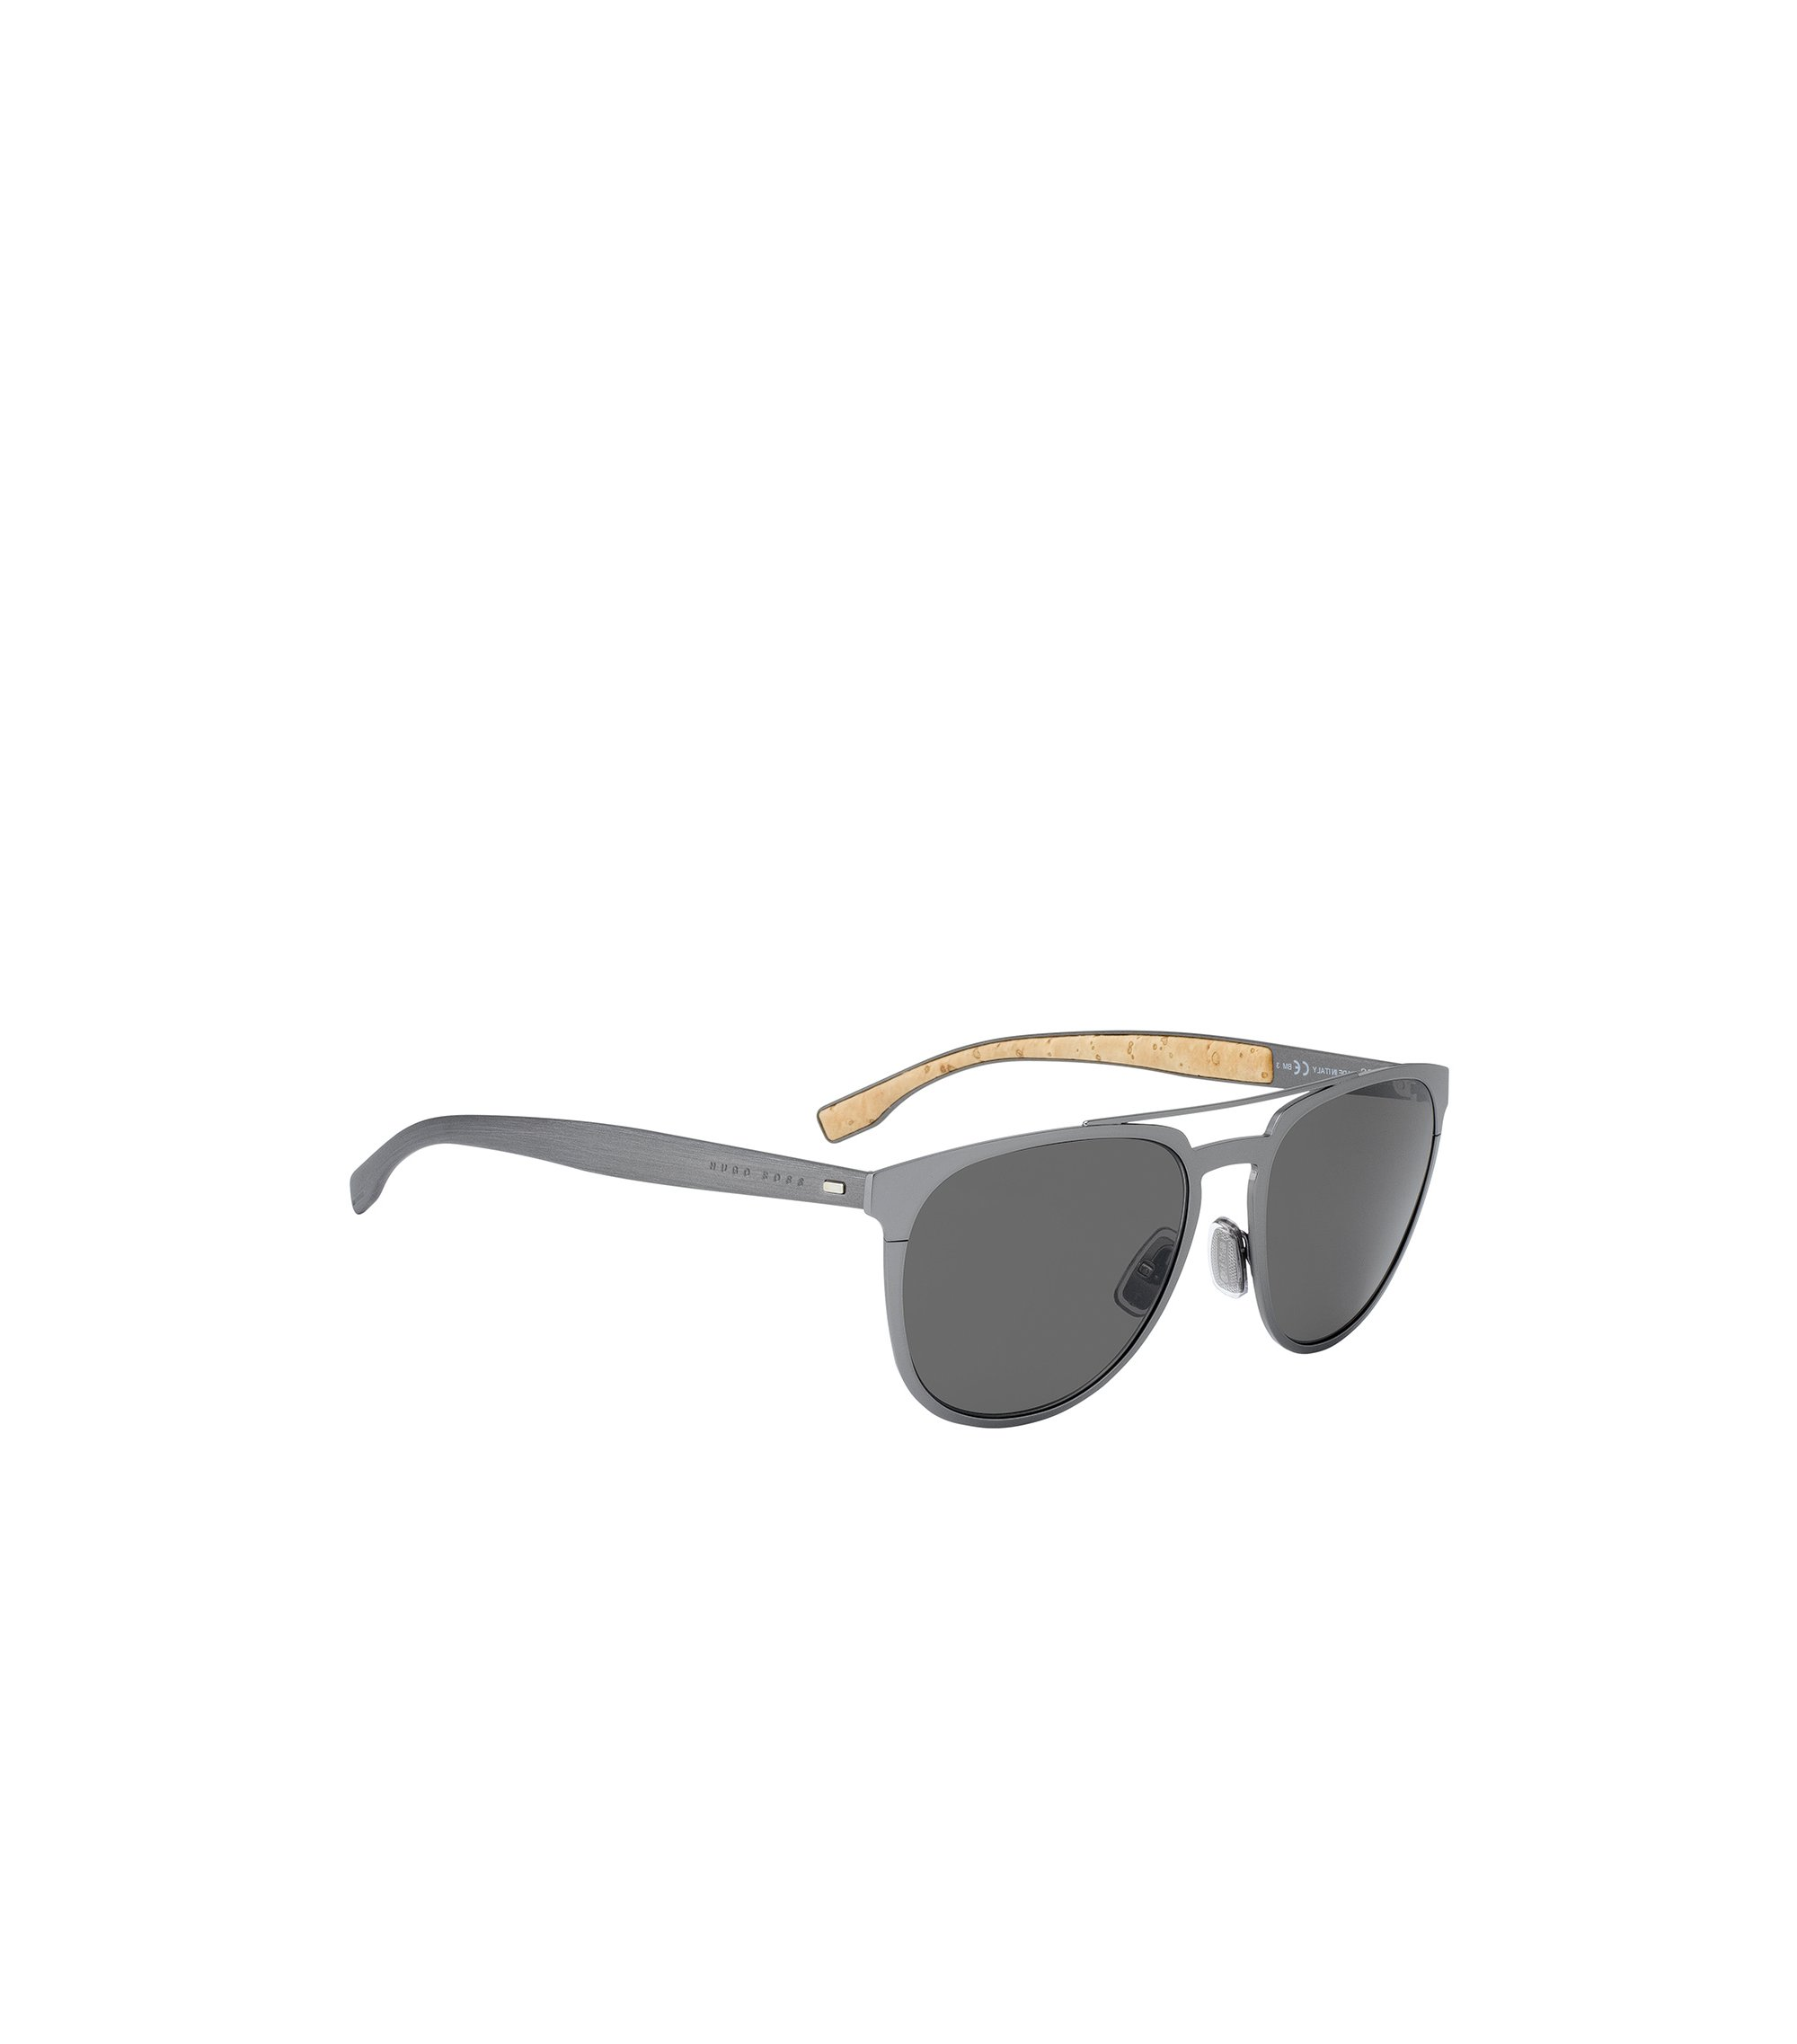 Dark grey metal sunglasses with cork trim, Silver